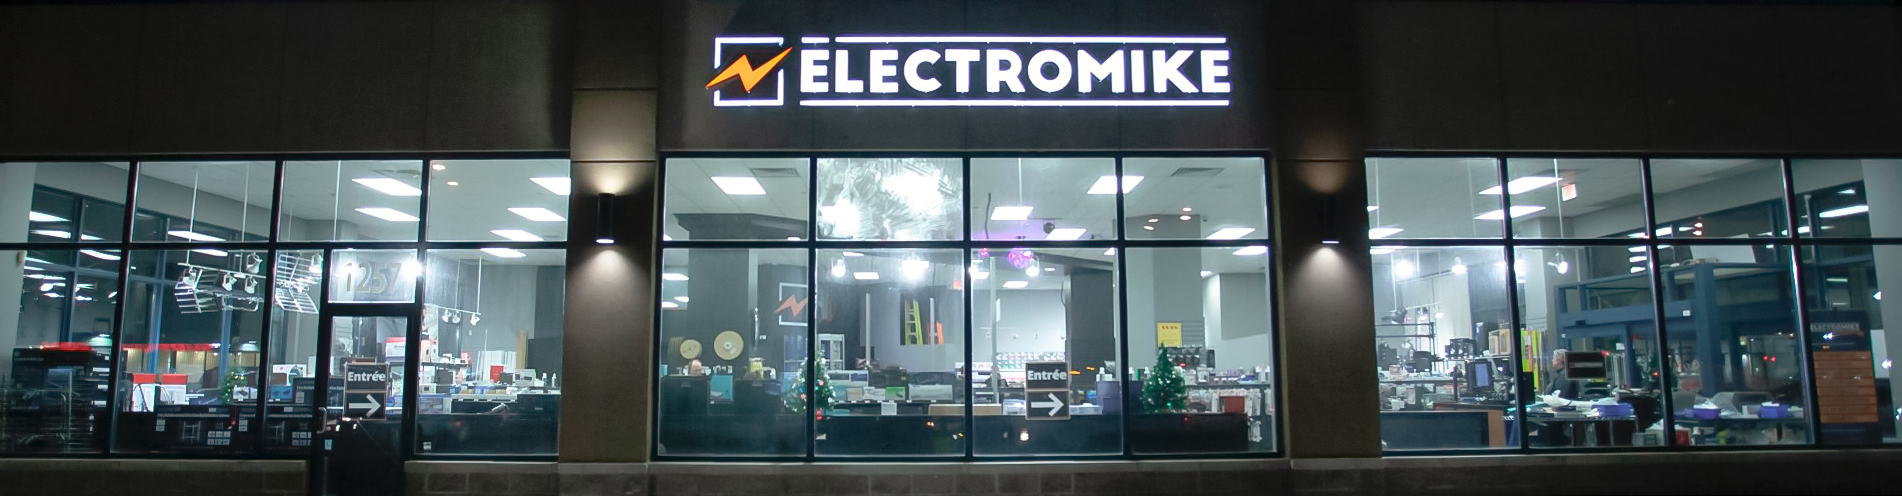 Magasin Électromike